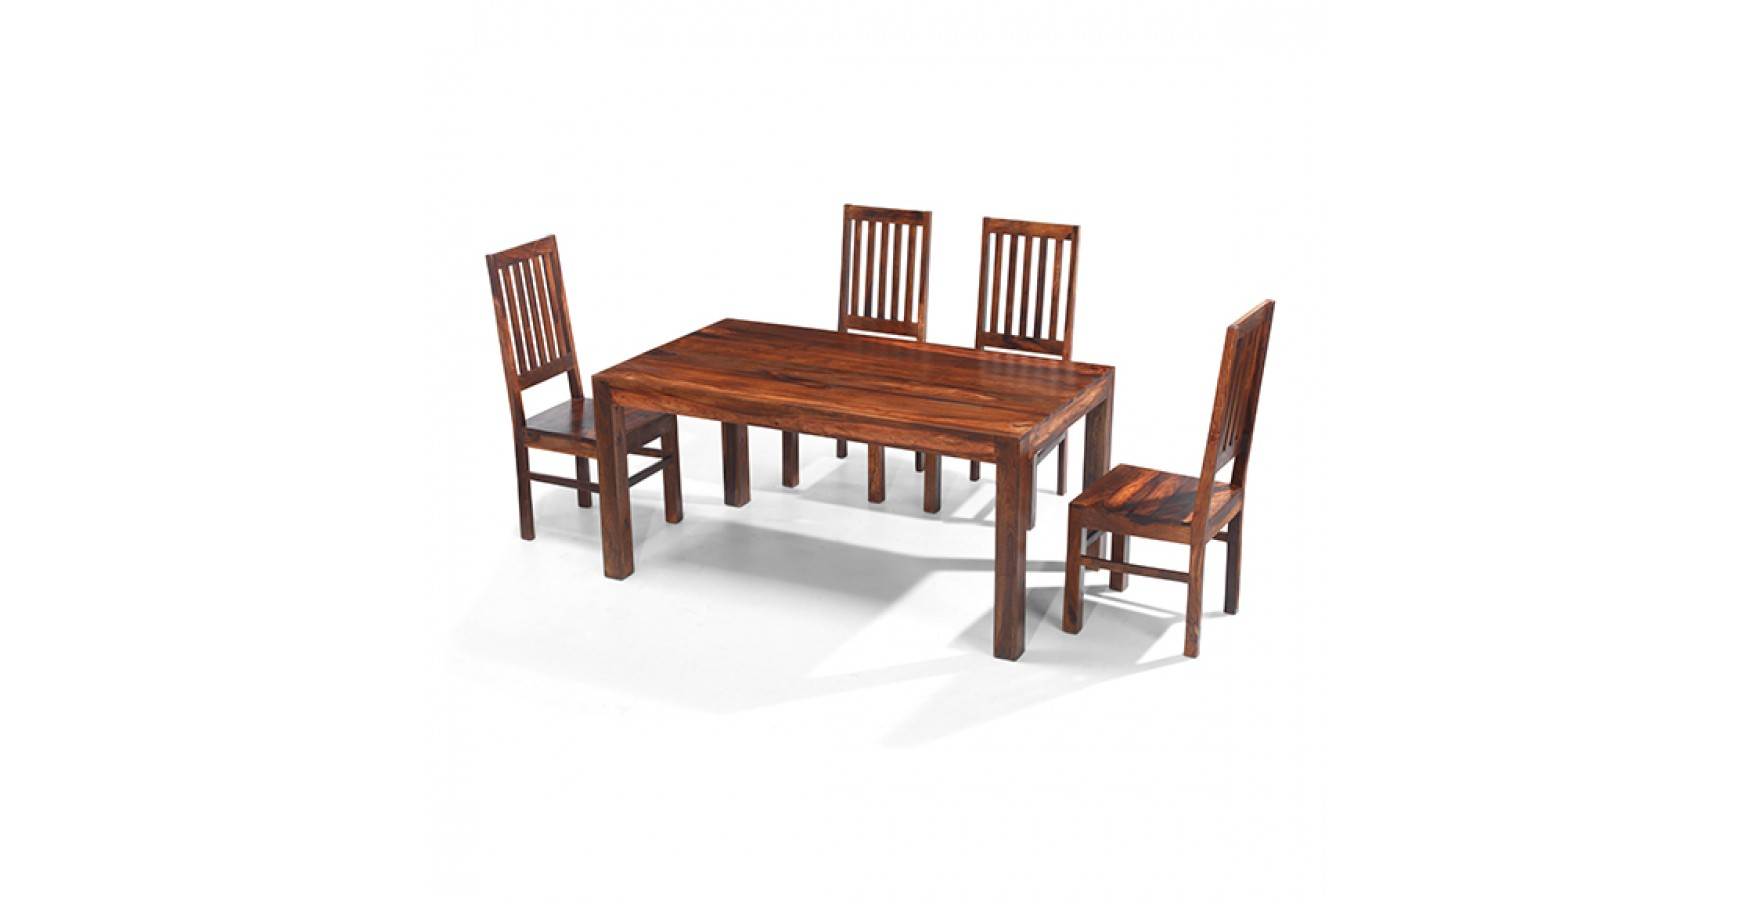 Cuba sheesham 160 cm dining table and 4 chairs lifestyle for Sheesham dining table